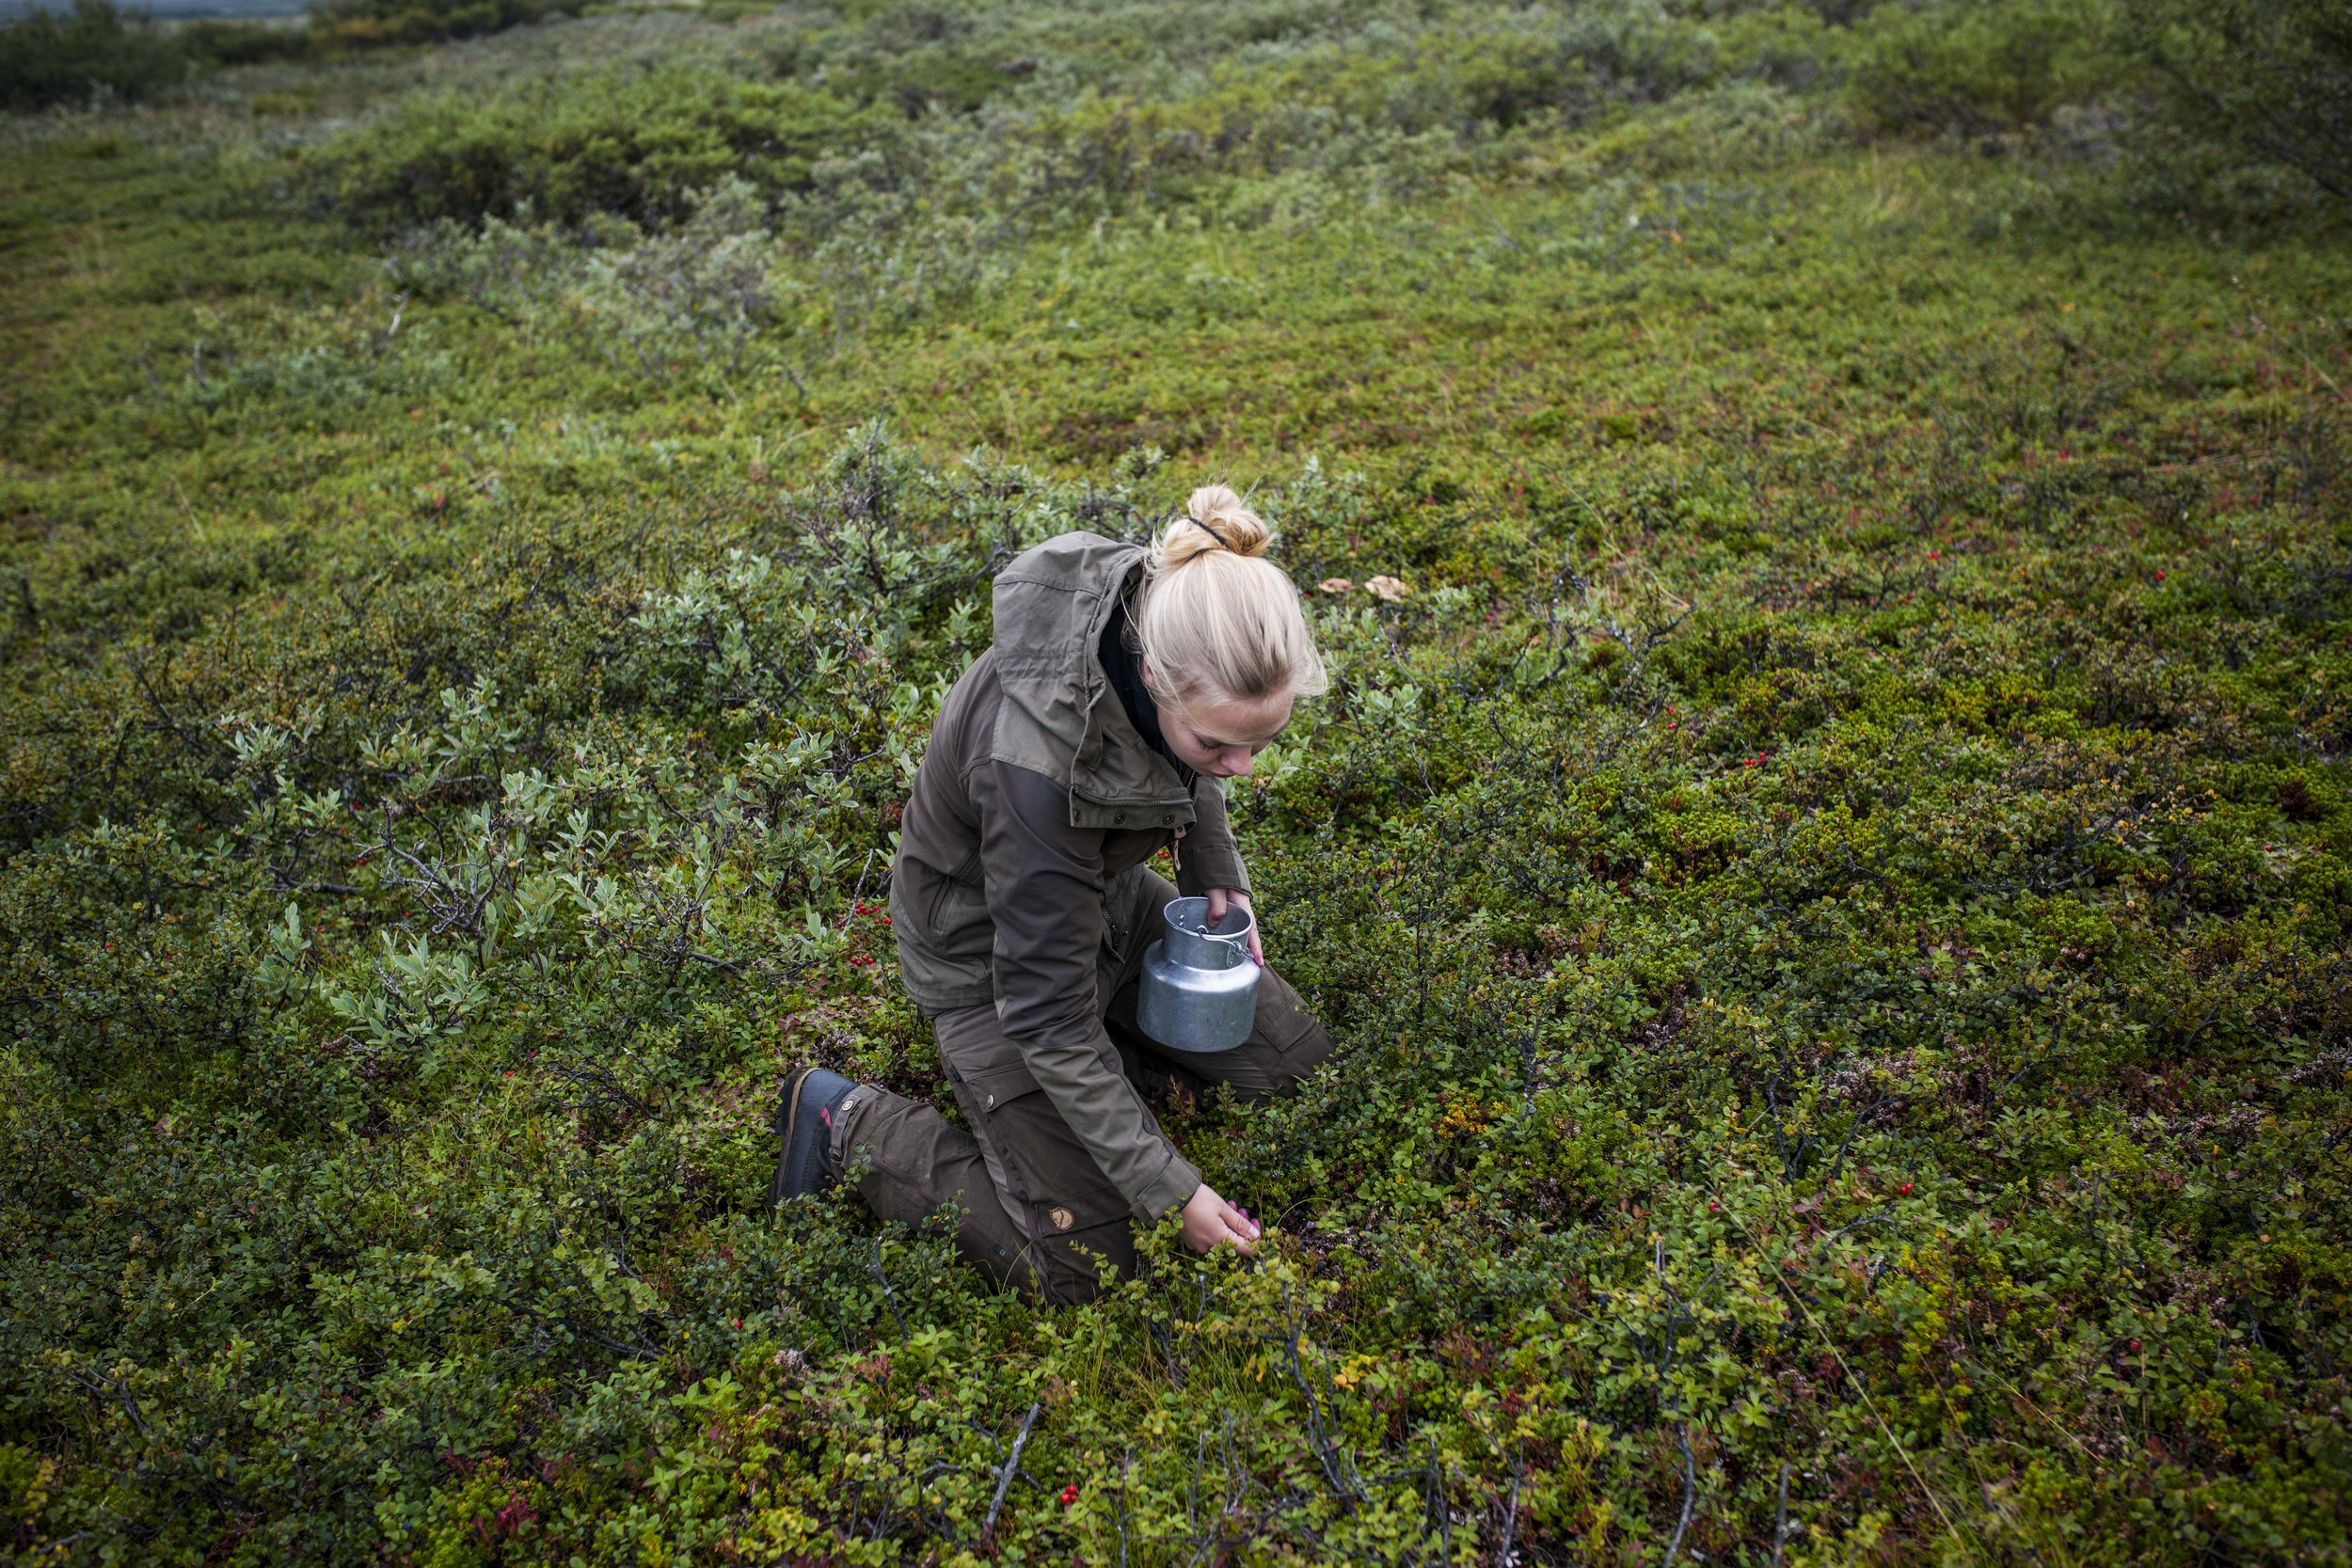 Me picking blueberries. Photo by Ylva